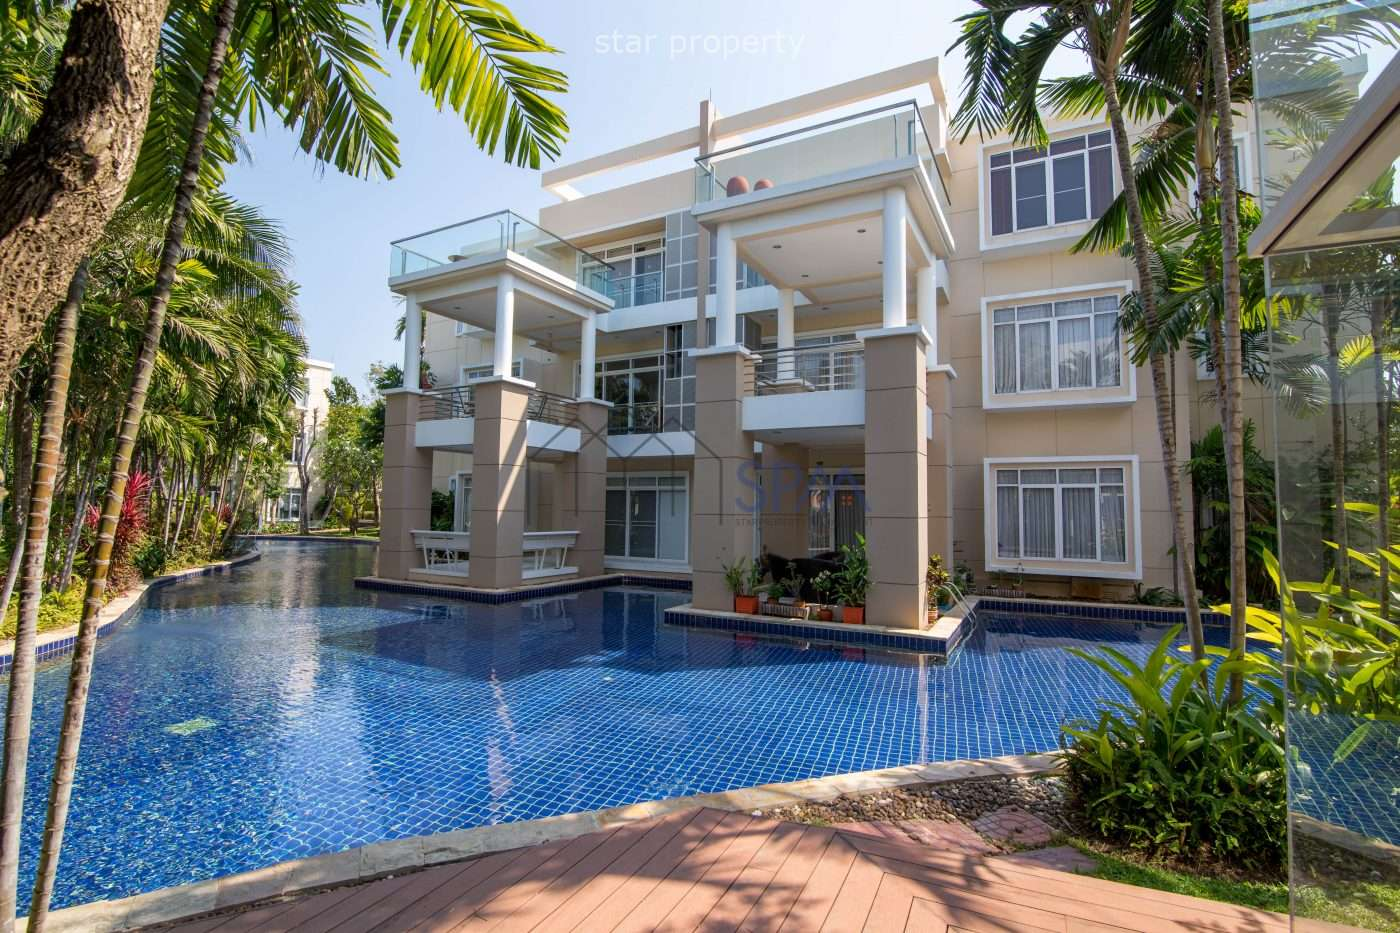 Stunning 2 Storey Pool Villa 4 beds for sale at Blue Lagoon